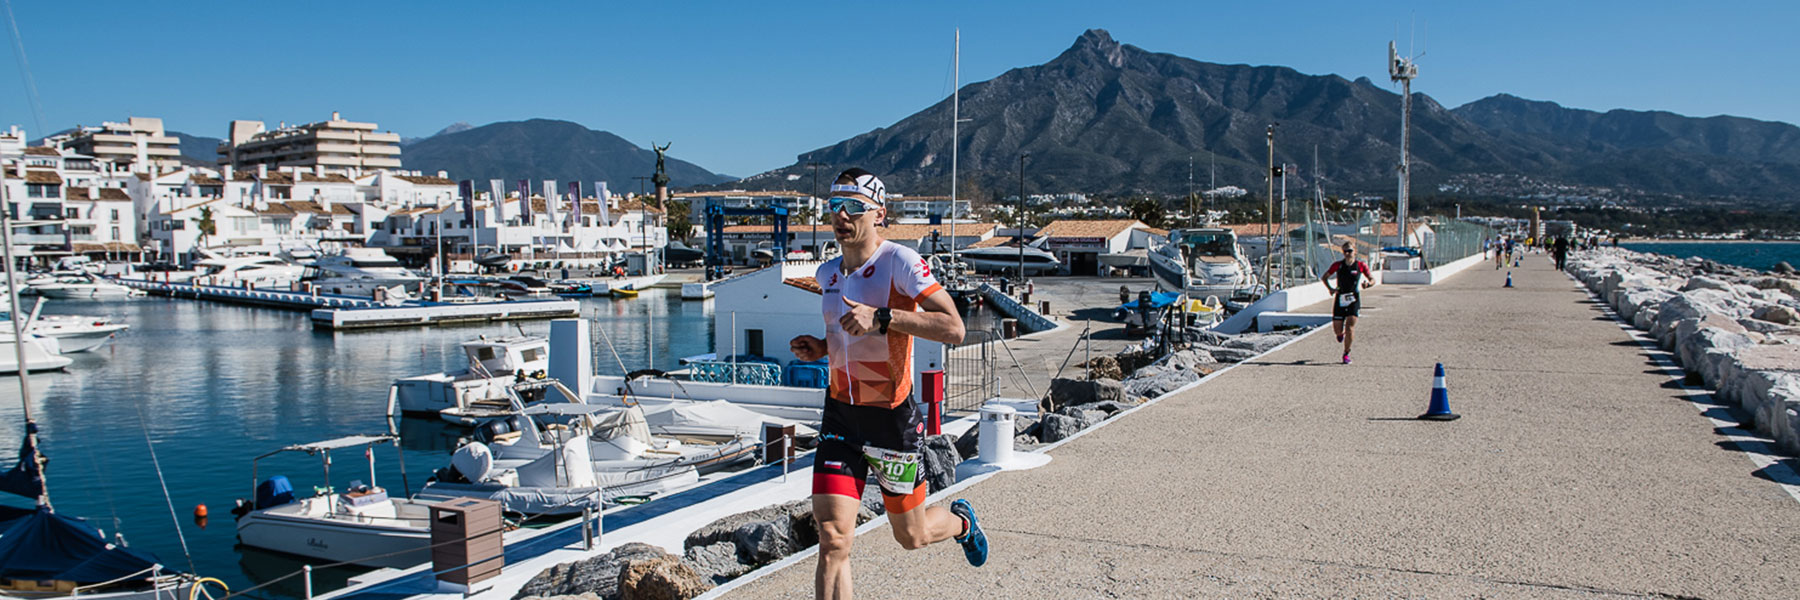 IRONMAN 70.3 Marbella athletes running along the promenade of Marbella which is surrounded by boats